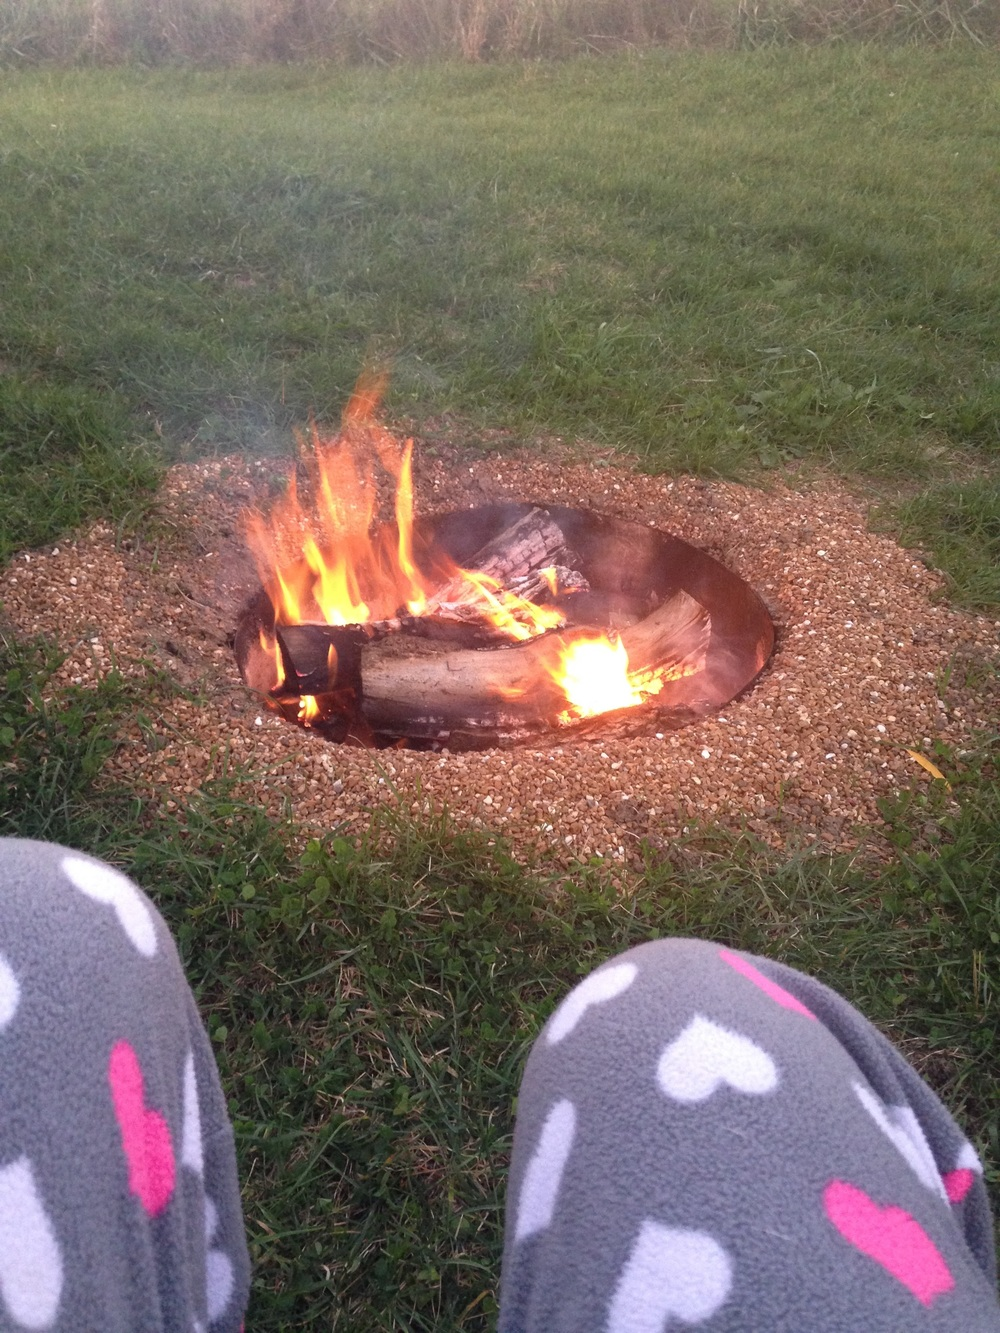 Pajamas-and-Bonfire.jpg